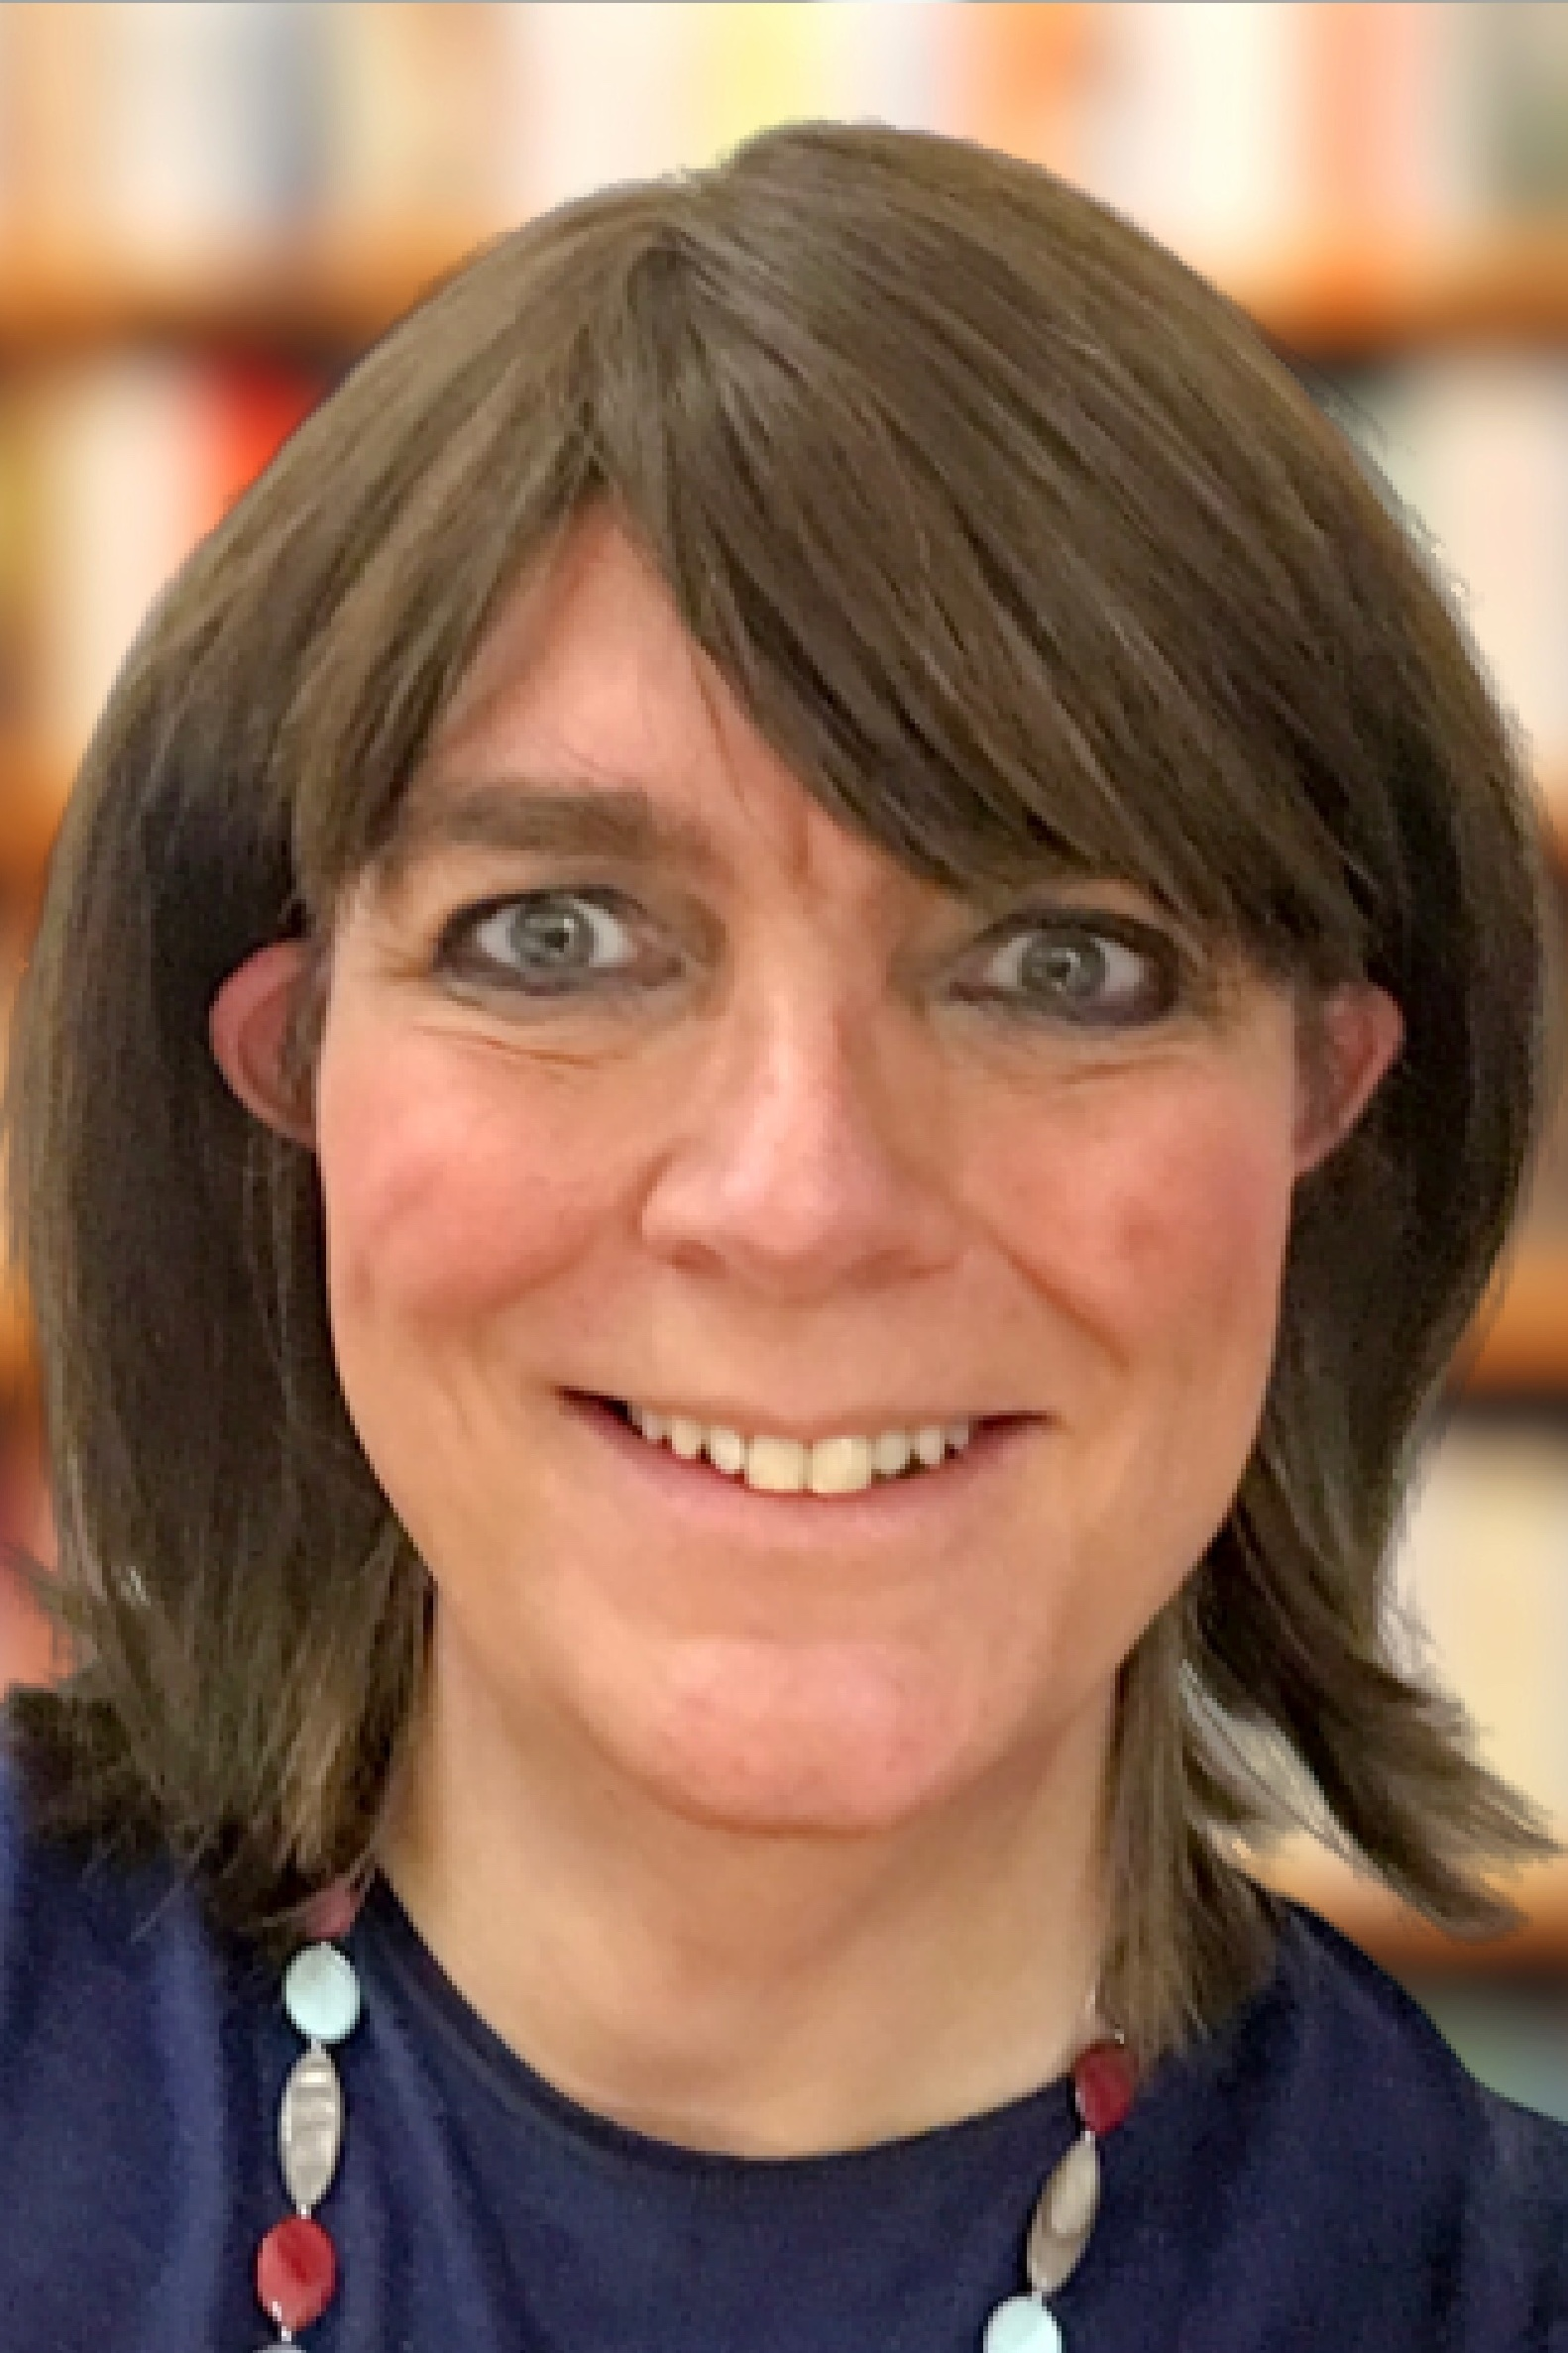 Joanne Lockwood: Joanne is a leading authority on Diversity & Inclusion and specialises in promoting Transgender Awareness. Delighted to have her along for the day.